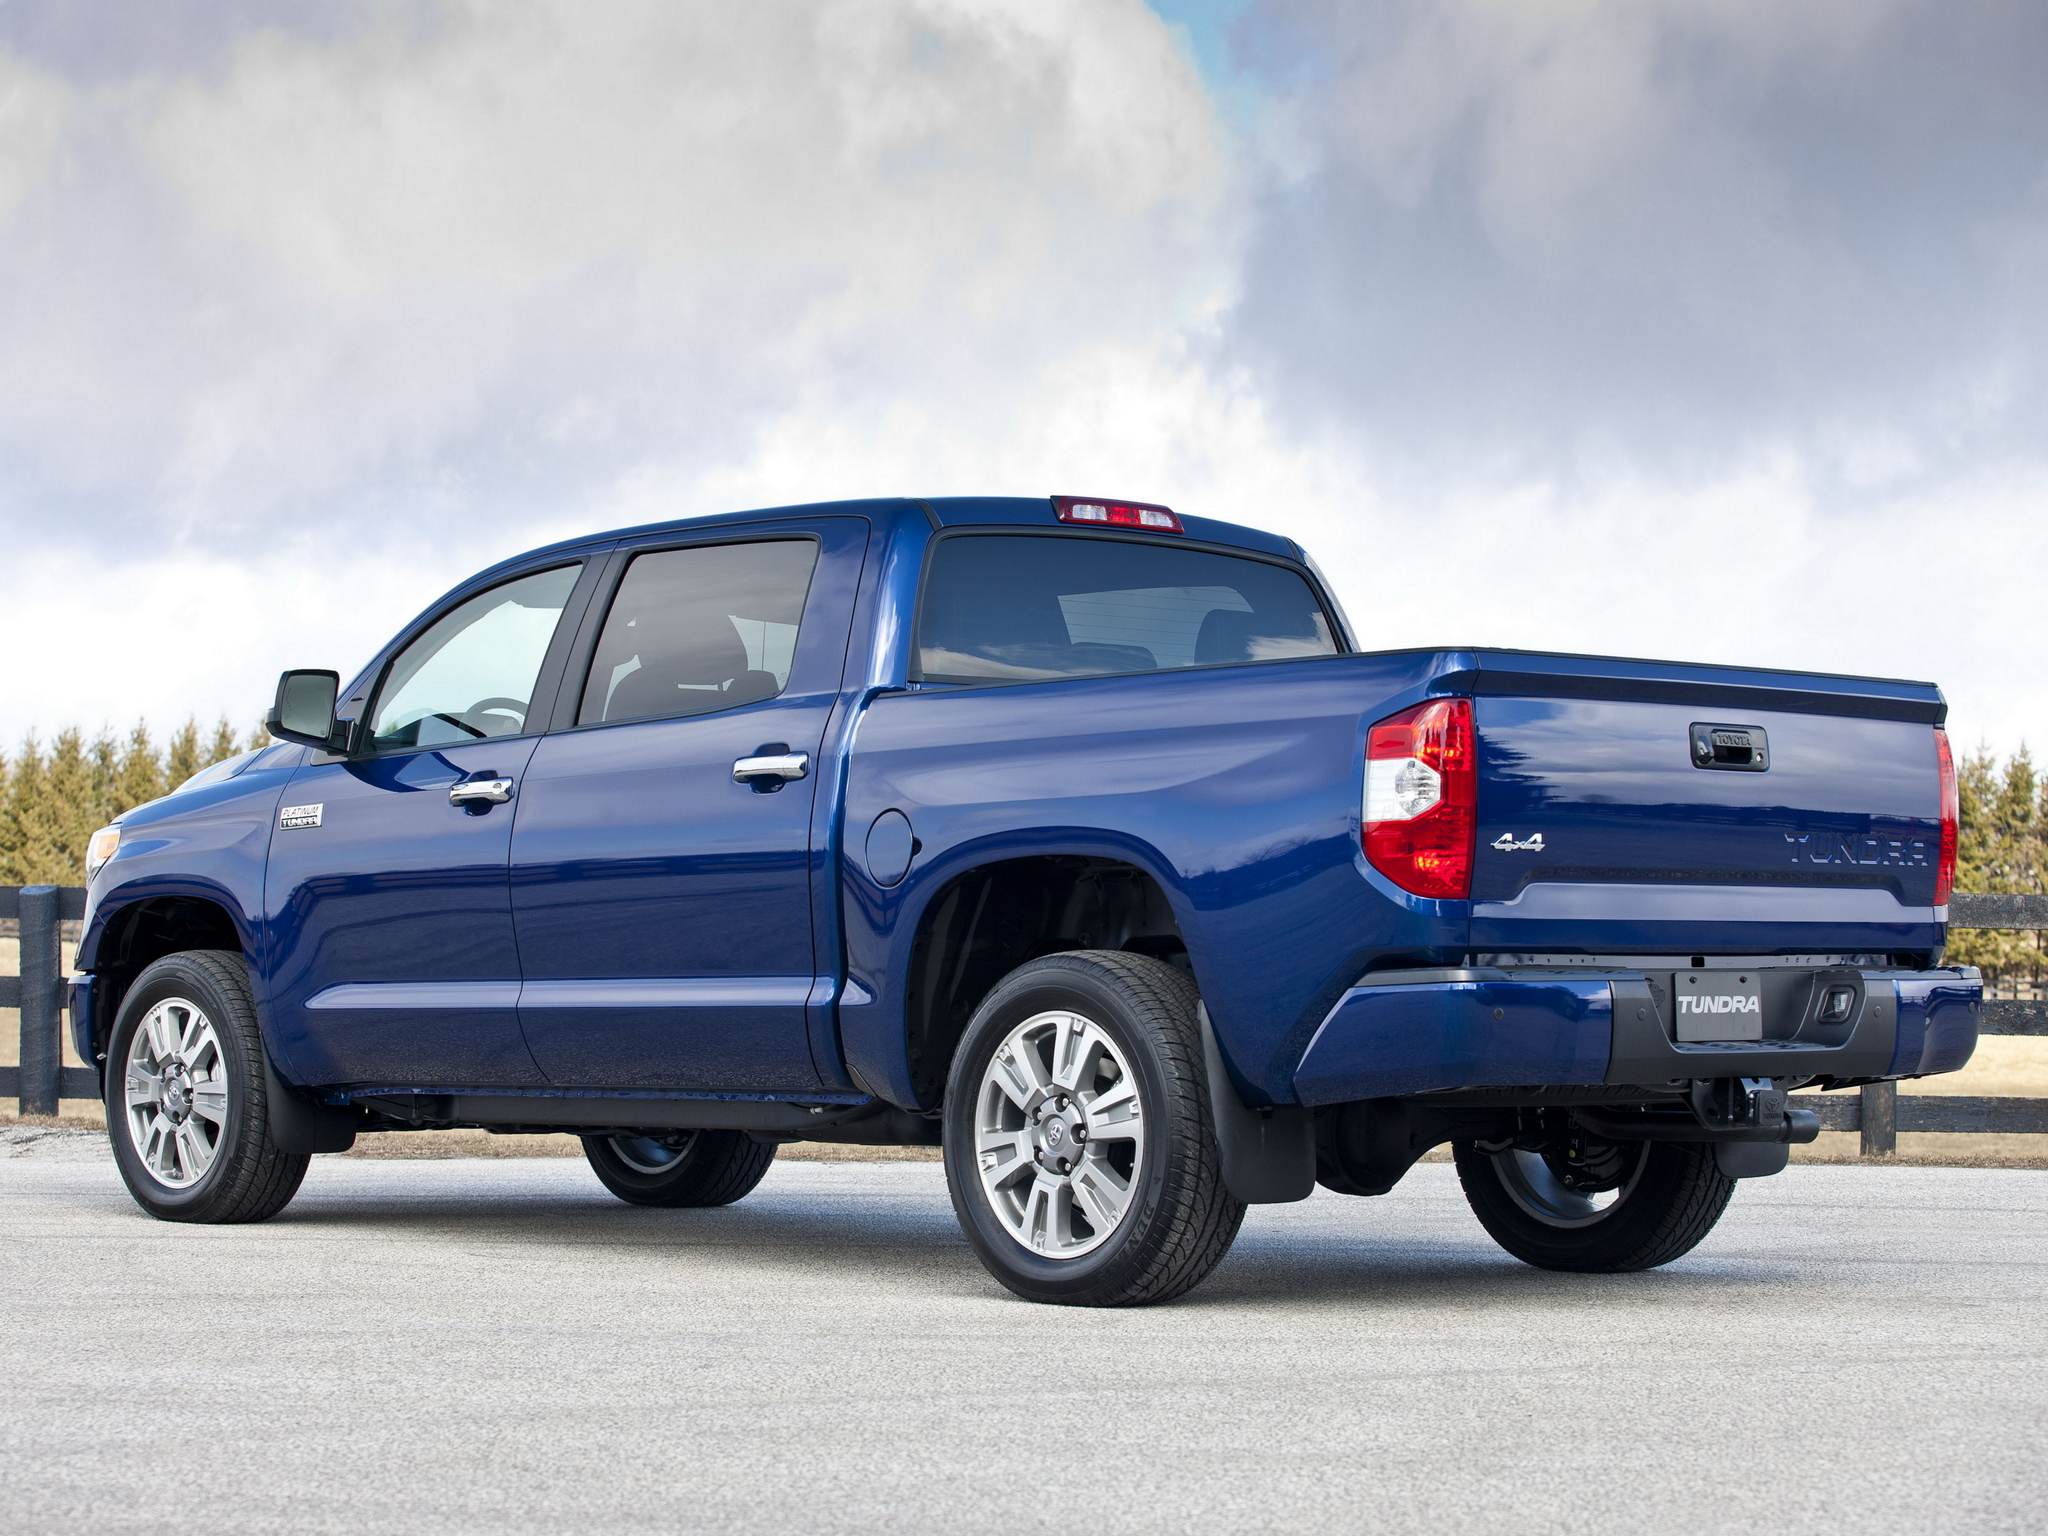 2014 toyota tundra crewmax platinum package pickup t wallpaper 2048x1536 159315 wallpaperup. Black Bedroom Furniture Sets. Home Design Ideas